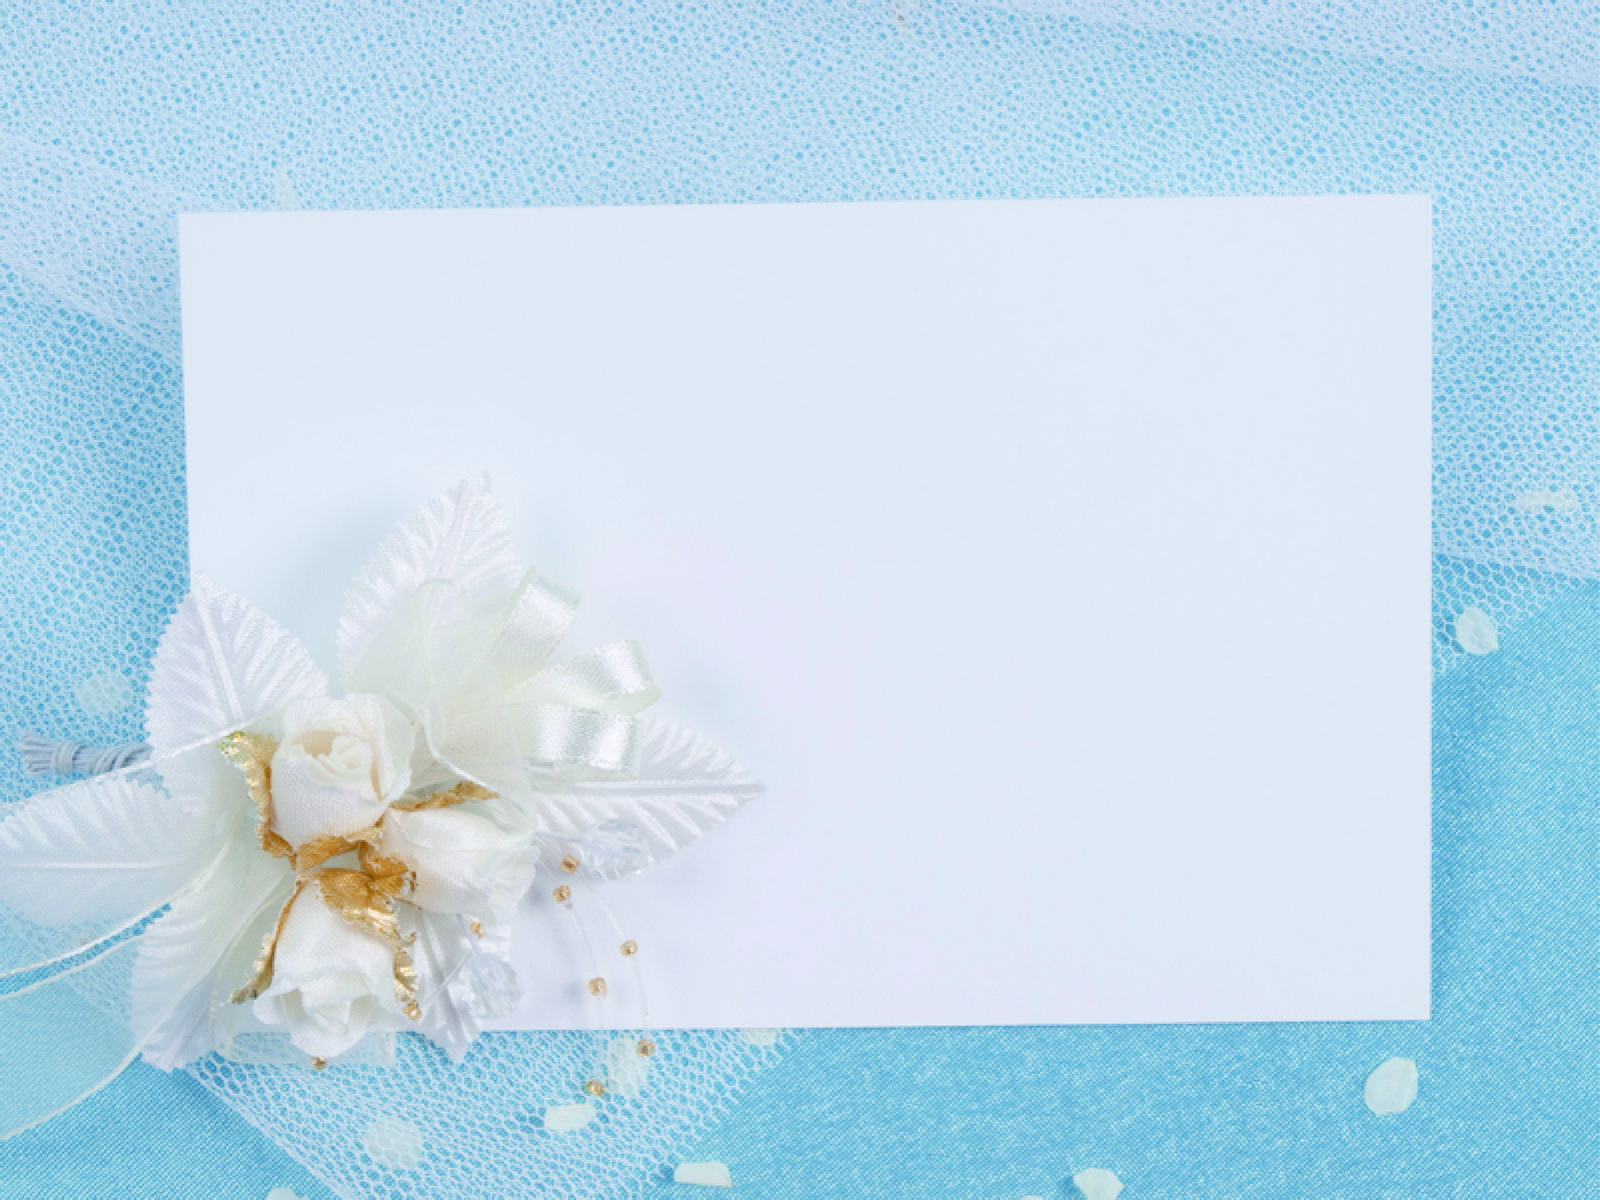 Blue Wedding Celebrate Card PPT Backgrounds